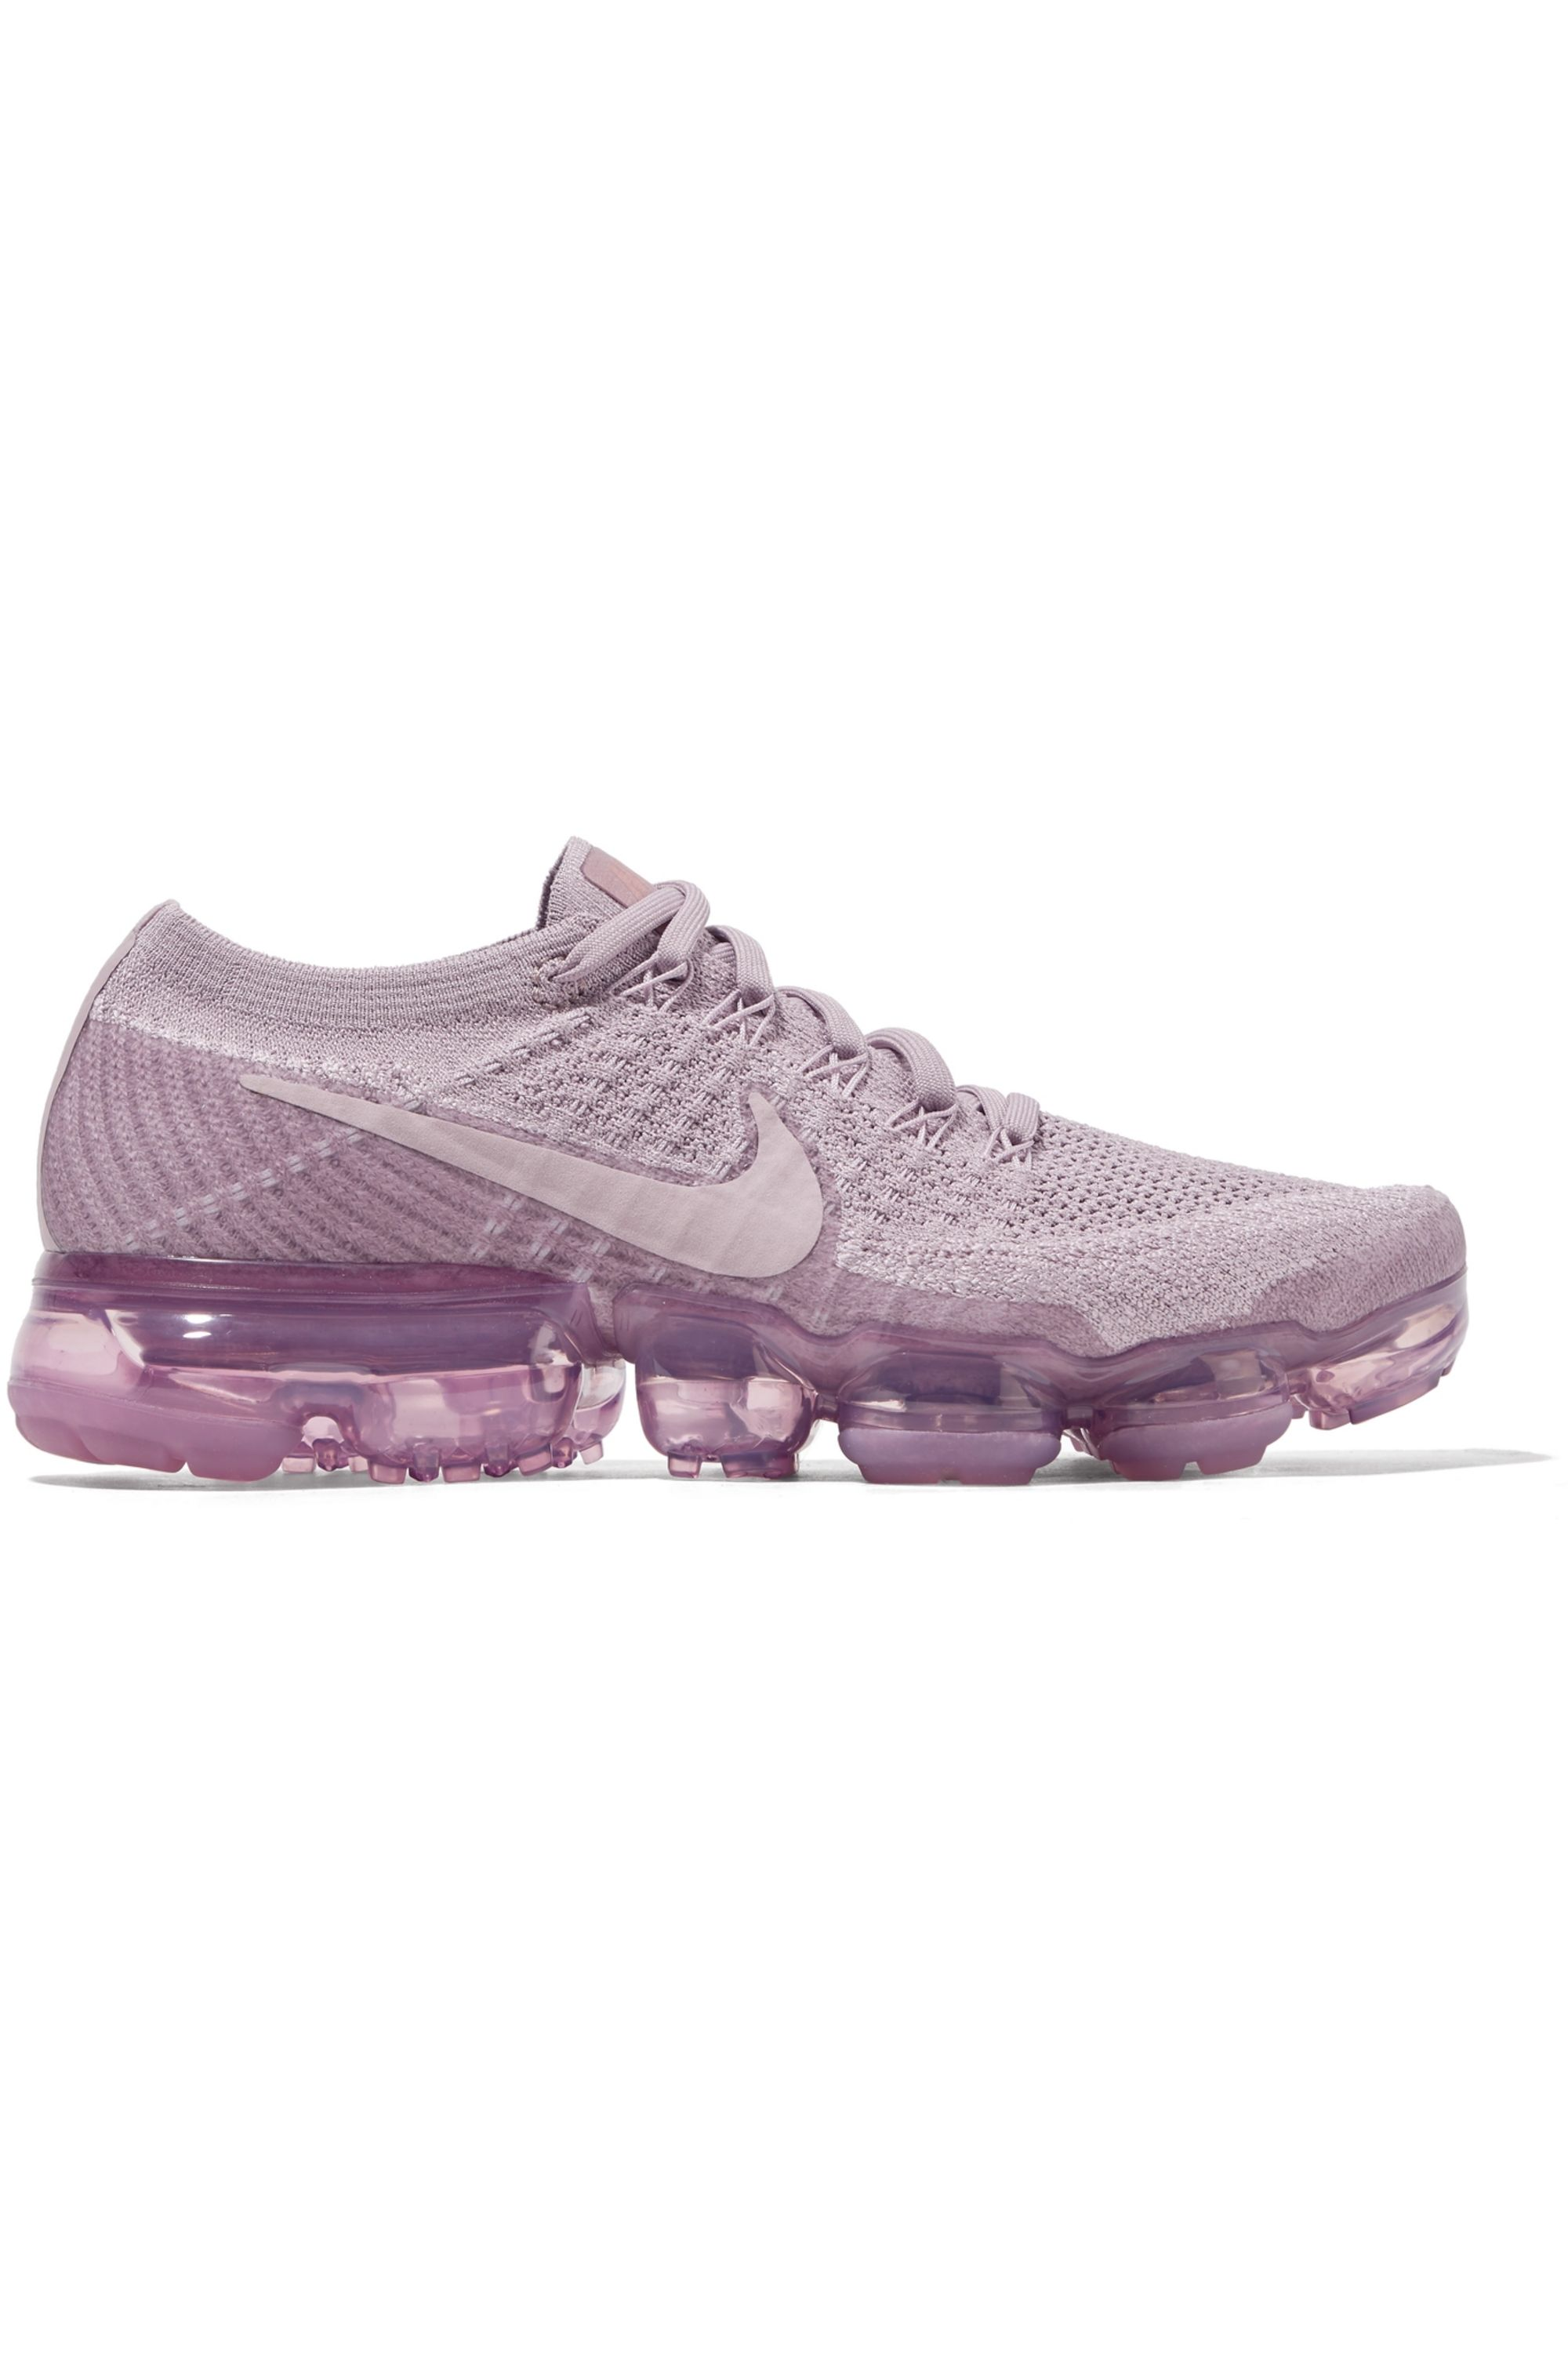 Lavender Sneakers Nike Outlet Shop, UP TO 57% OFF